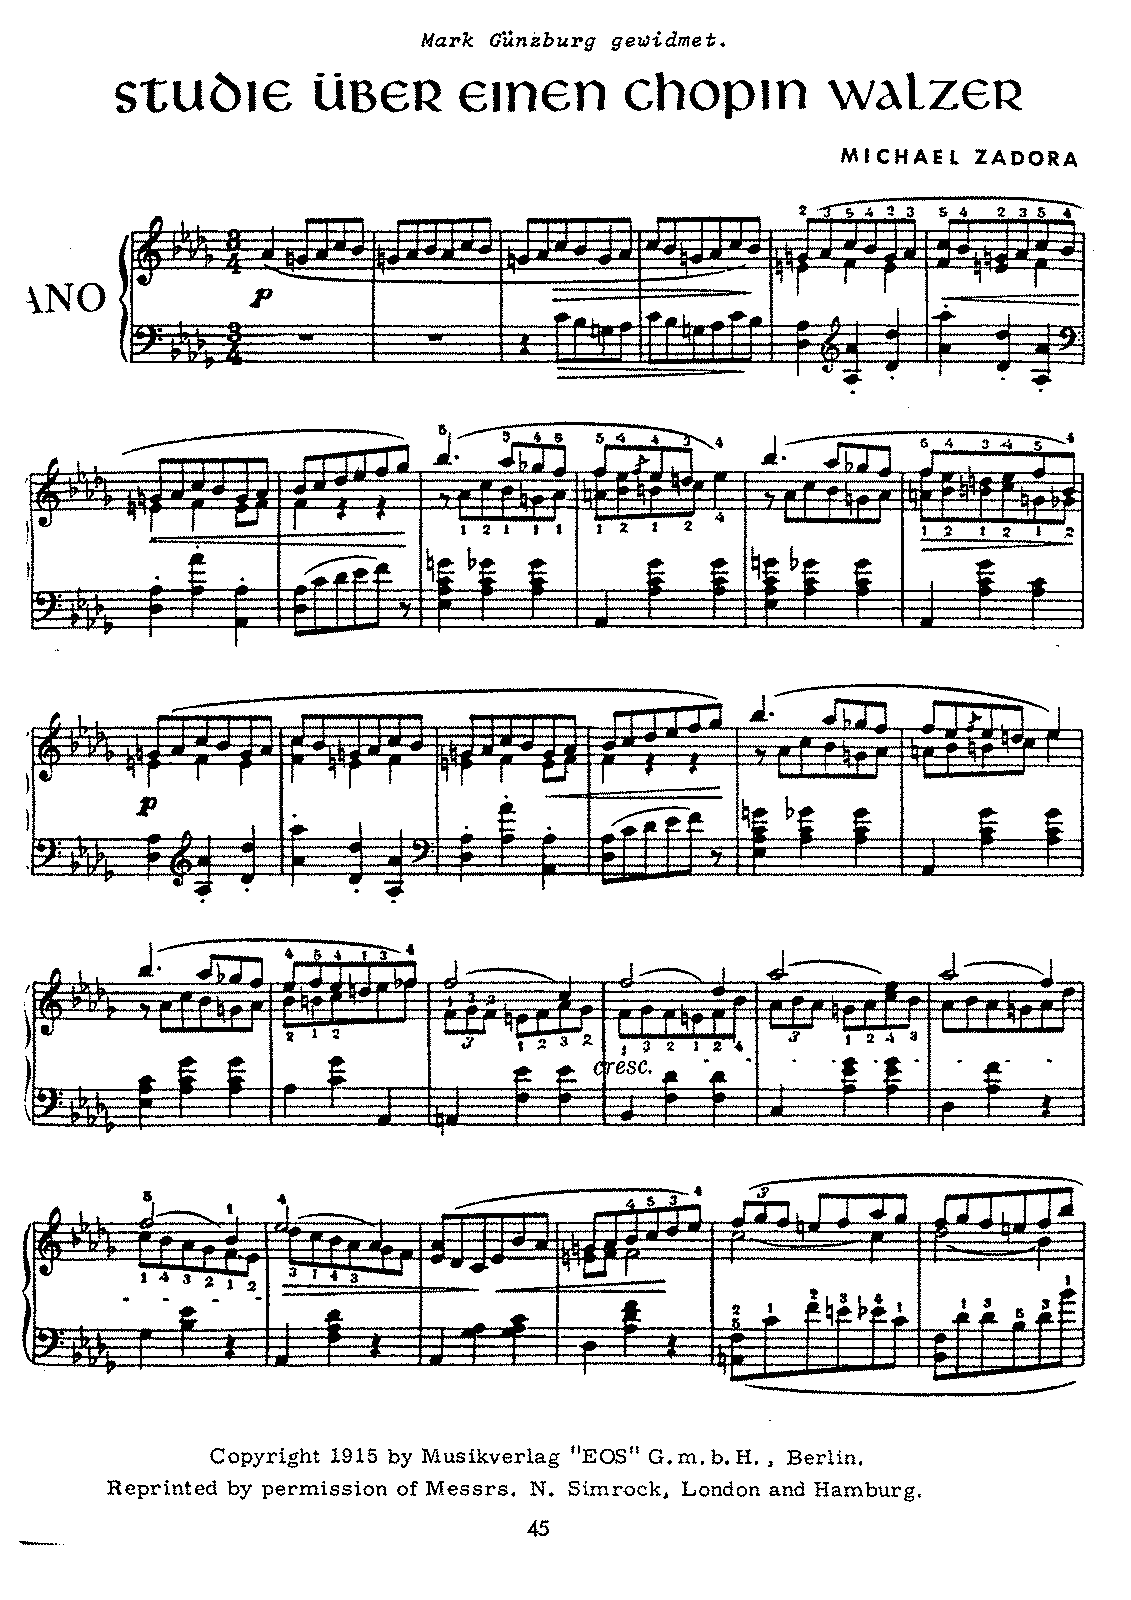 Chopin-Zadora Study on the Waltz in Db op64n1.pdf